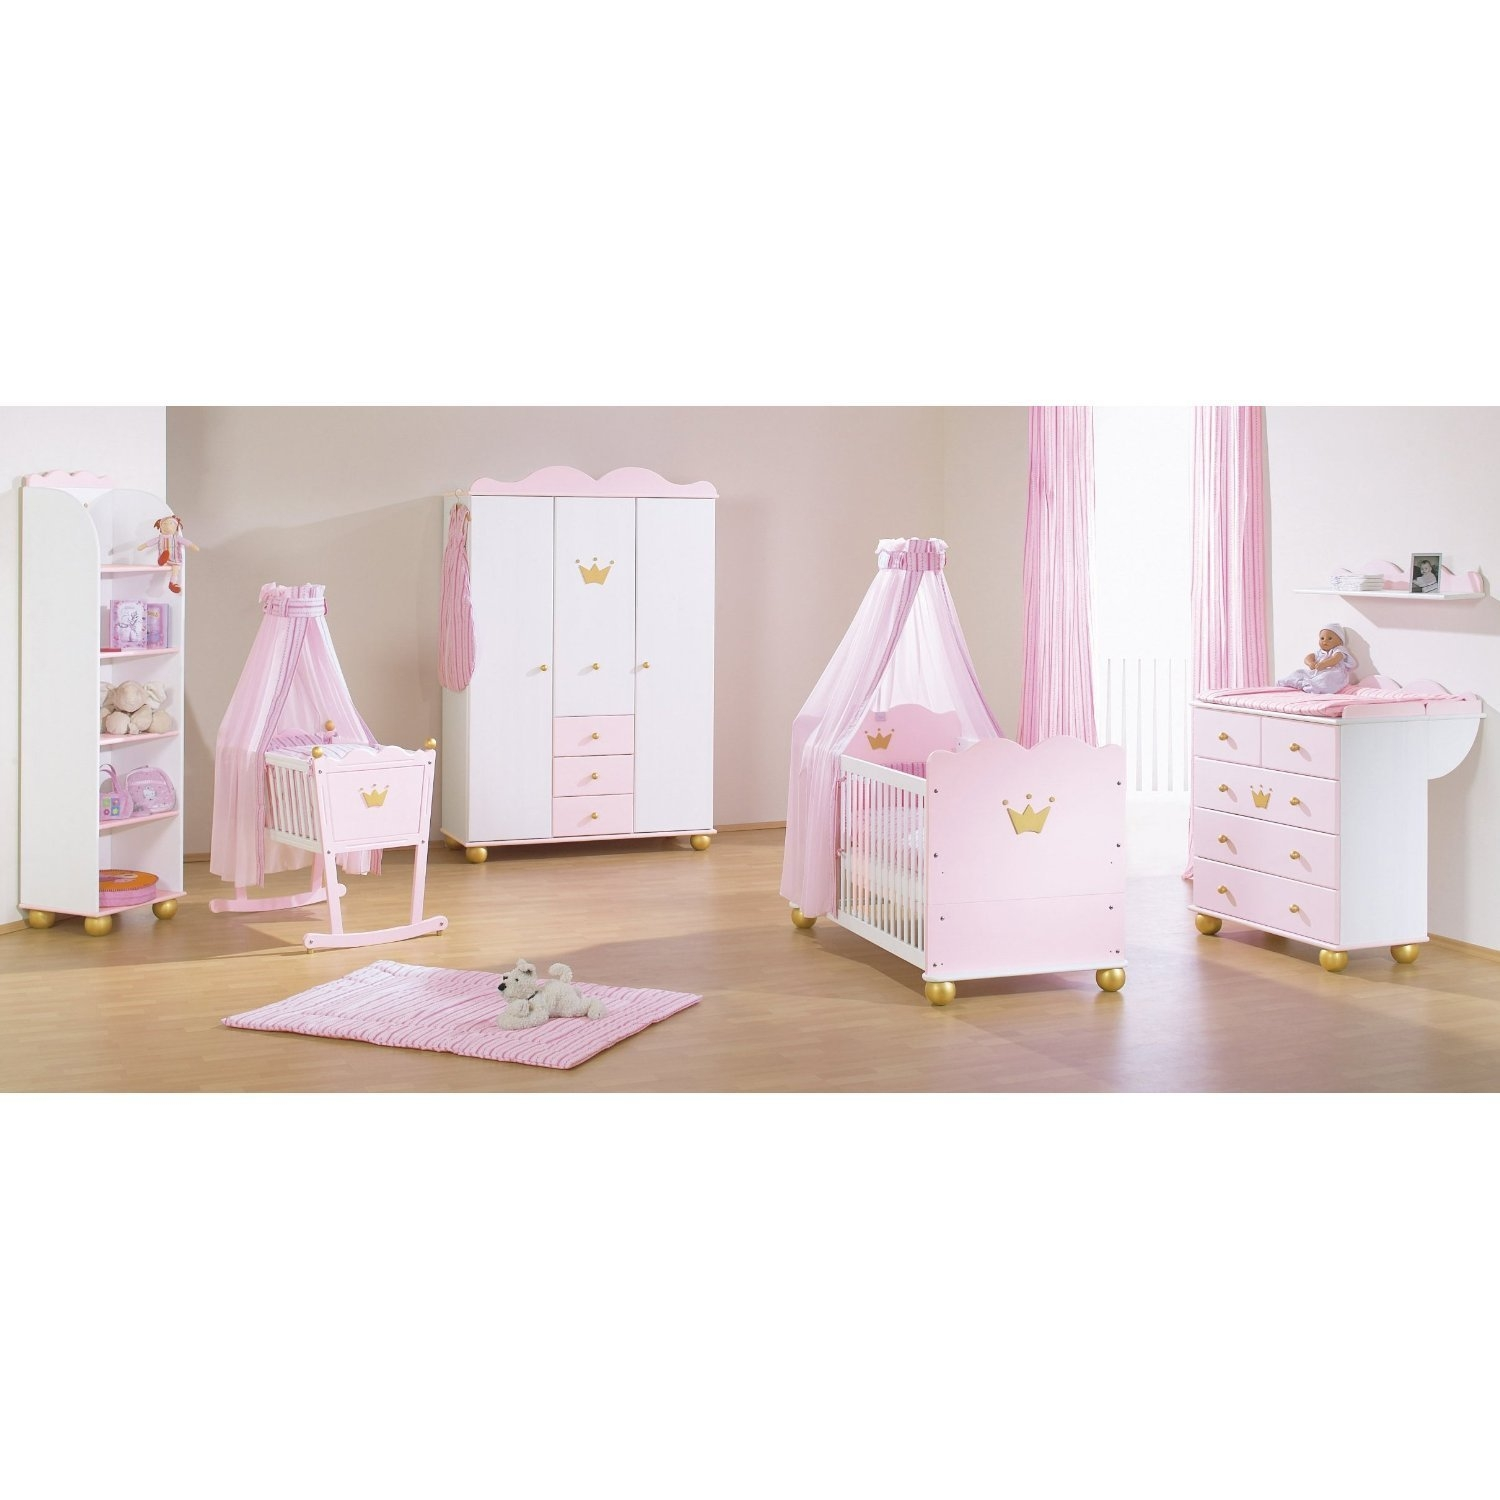 Chambre b b fille princesse caroline for Photo de chambre de bebe fille